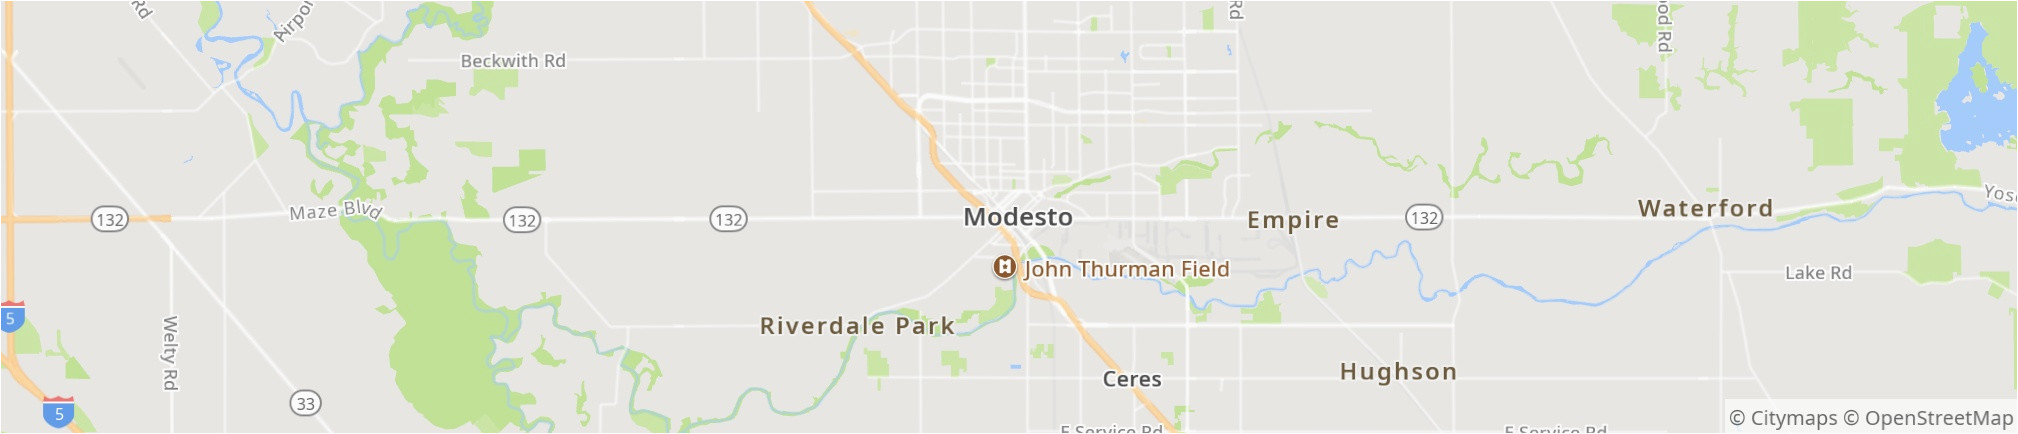 Map Of Modesto California Modesto 2019 Best Of Modesto Ca ... Map Modesto Ca on map paso robles ca, map riverside ca, map lemoore ca, map silicon valley ca, map of modesto and surrounding cities, map fresno ca, map inland empire ca, map bakersfield ca, map of downtown modesto, map san diego ca, map ventura ca, map victorville ca, map la habra ca, map vallejo ca, map modesto calif, map pleasanton ca, map pasadena ca, map chino ca, map sacramento ca, map rialto ca,